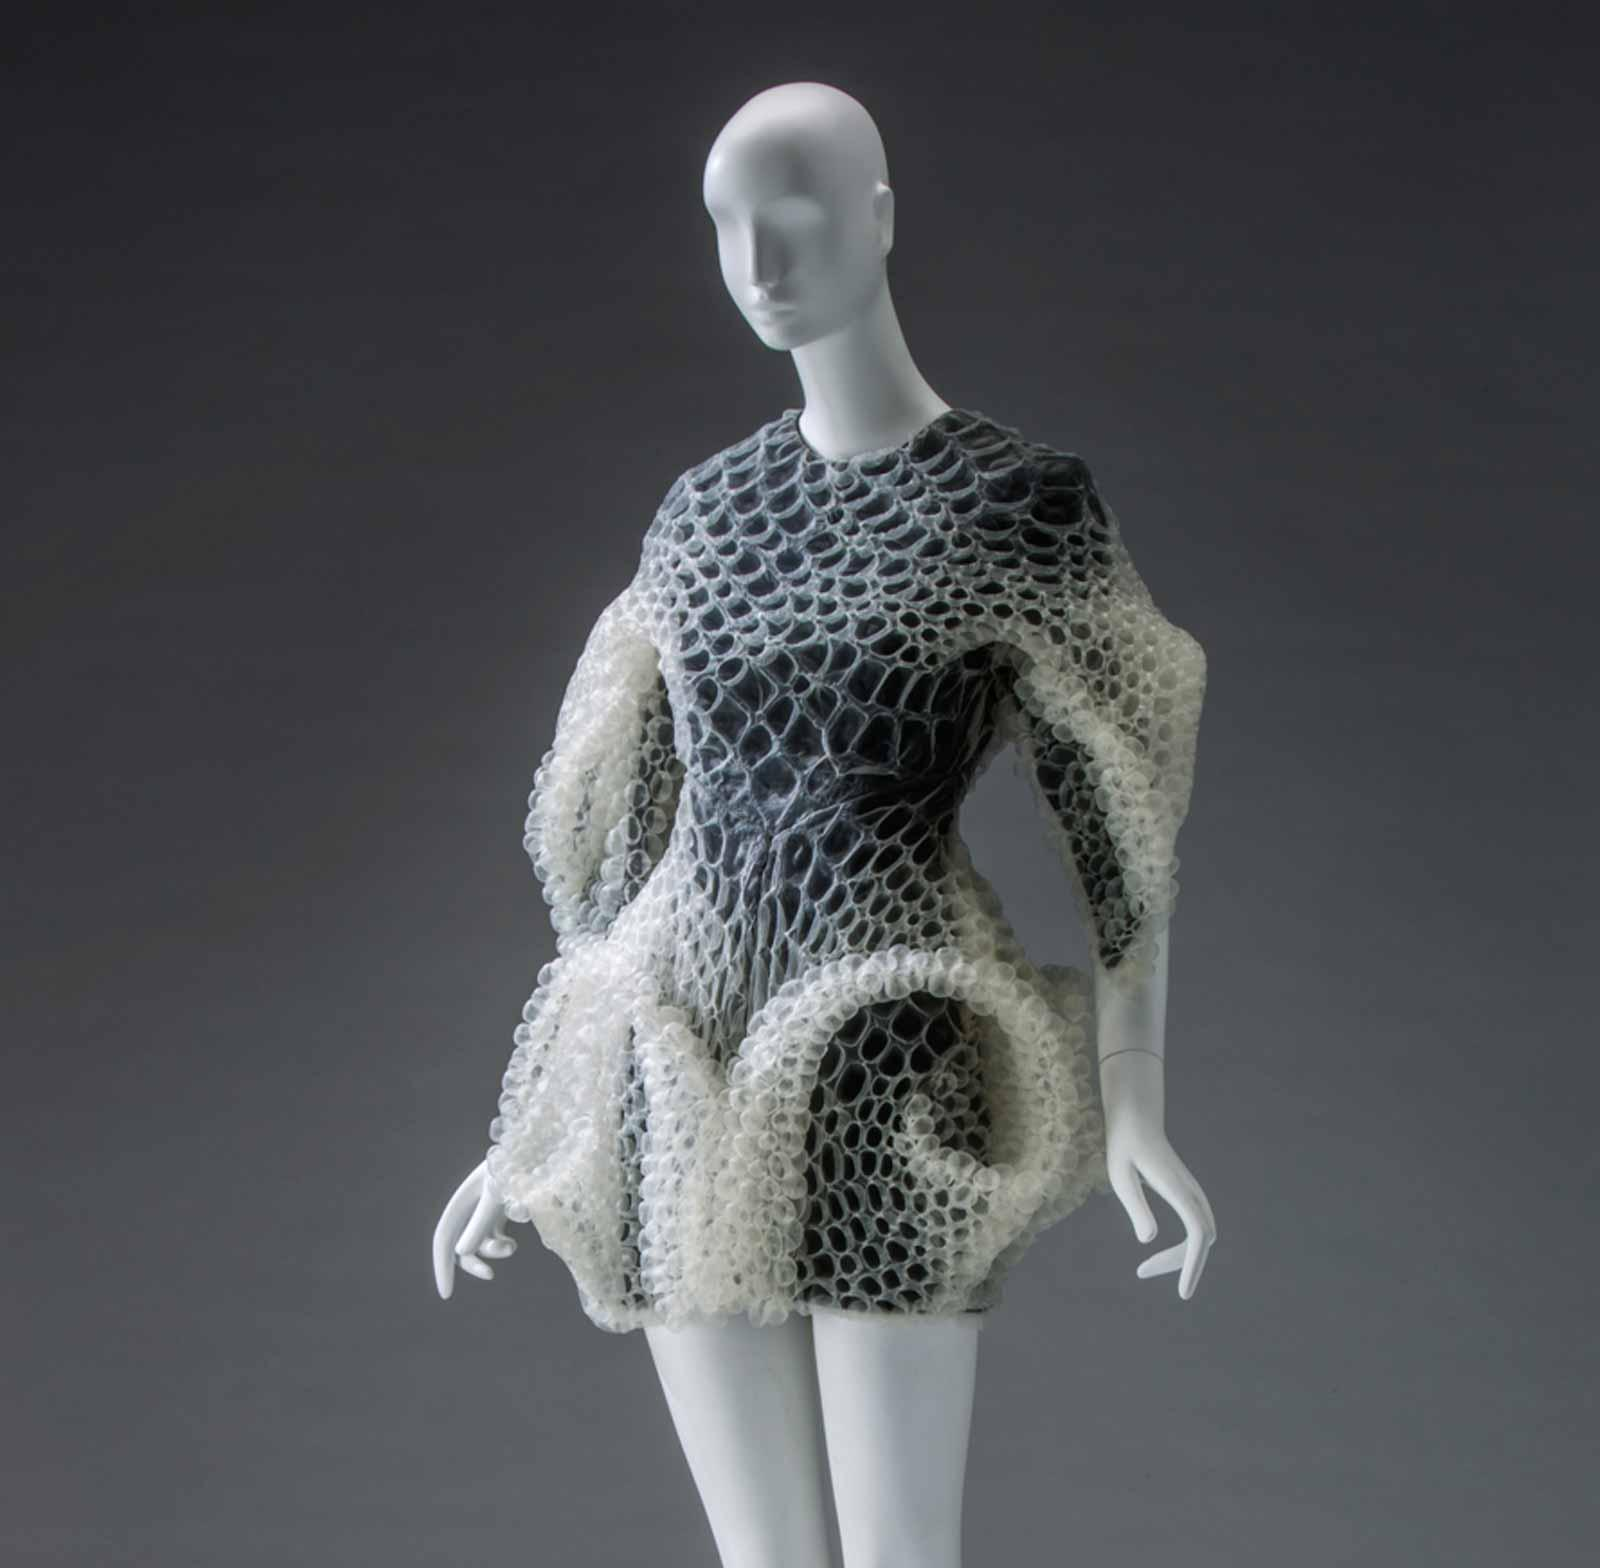 Iris van Herpen Haute Couture Collection